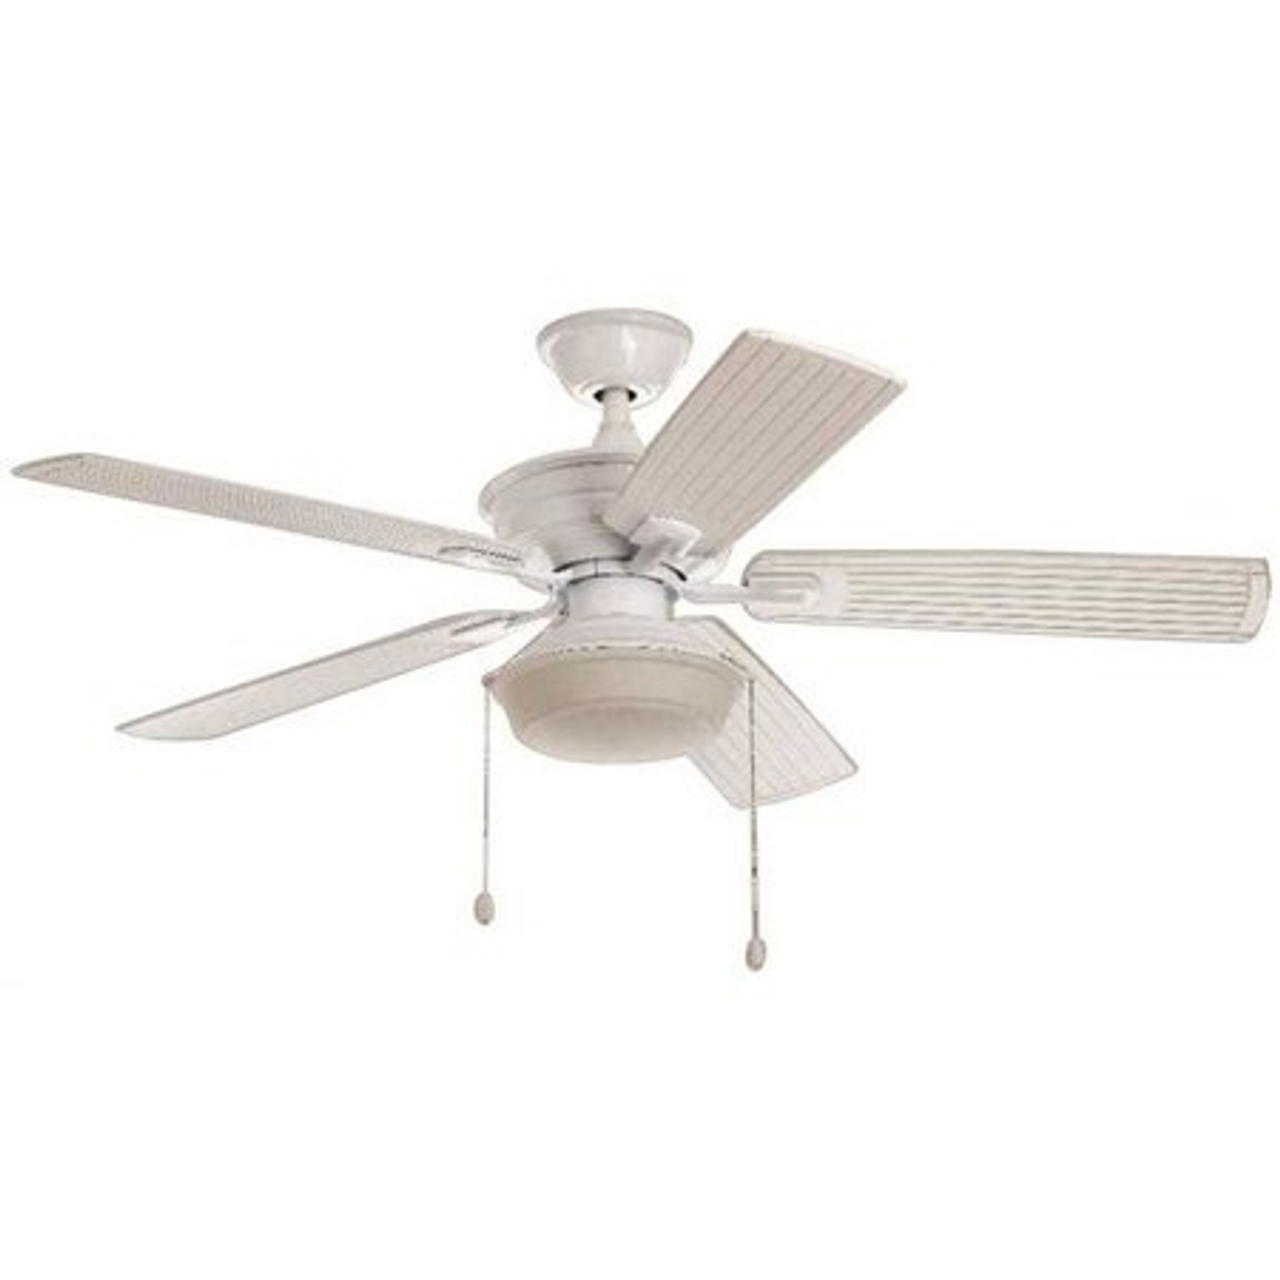 Home Decorators Collection | Marshland Ceiling Fan | 3572863